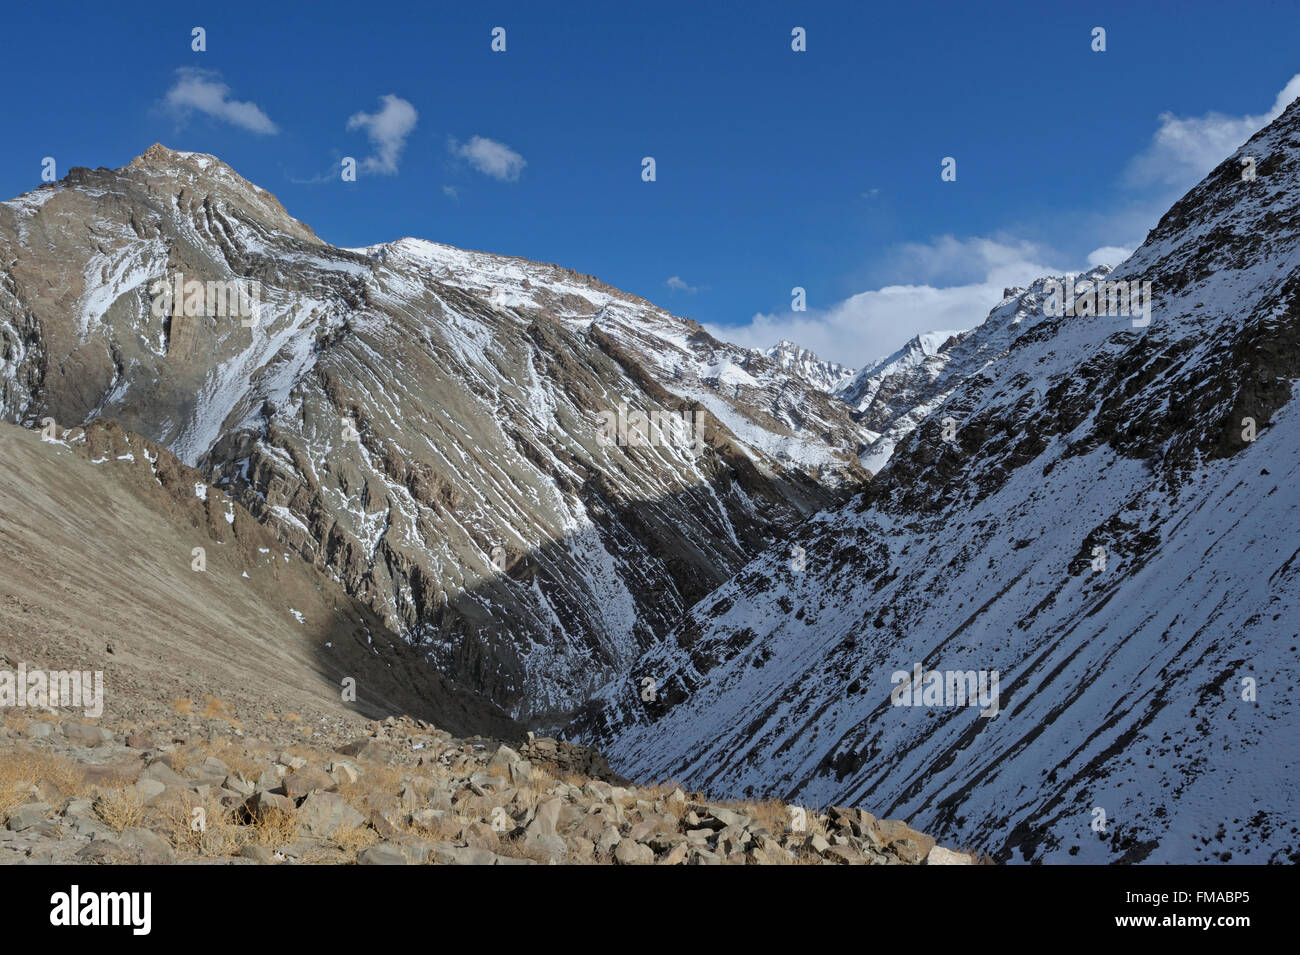 Barren snow covered mountain slopes in the trans Himalayan cold desert of Ladak during winters - Stock Image